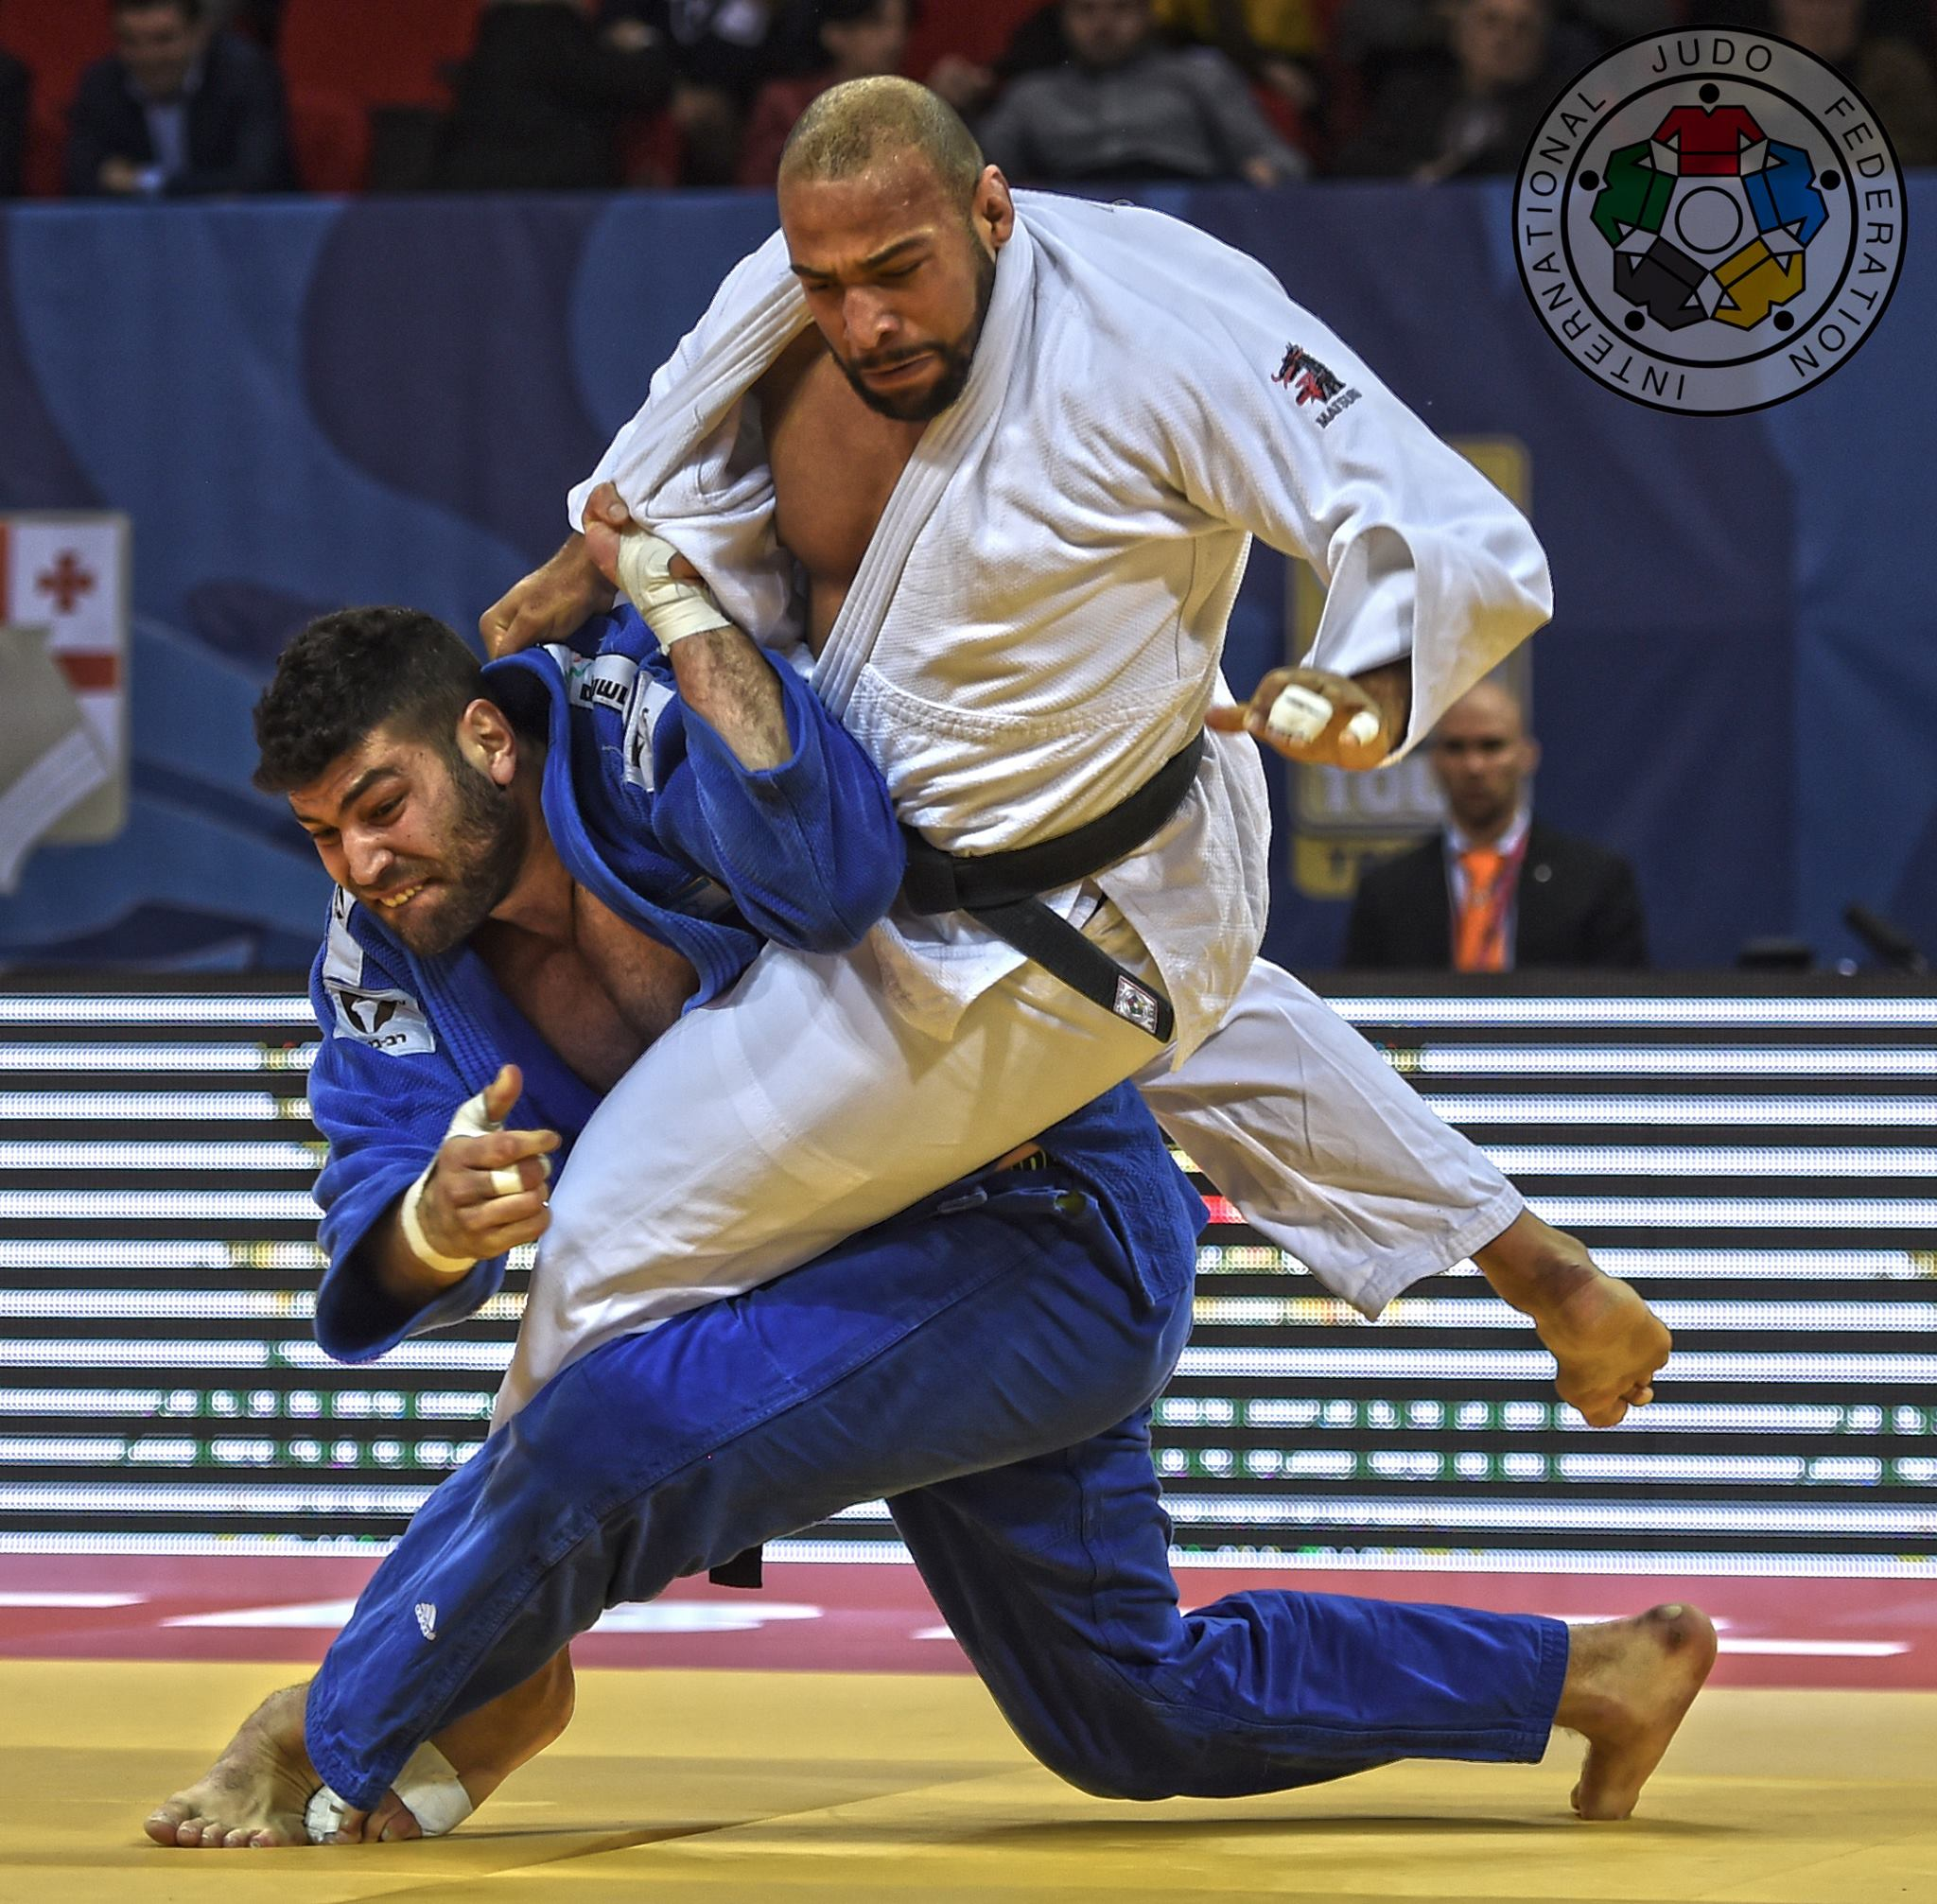 Judoka Or Sasson earns a victory over Dutch Roy Meyer, throwing him for yuko in the +100kg final at the Tbilisi Grand Prix 2016. Photo via IJF Media Team - Jack Willingham